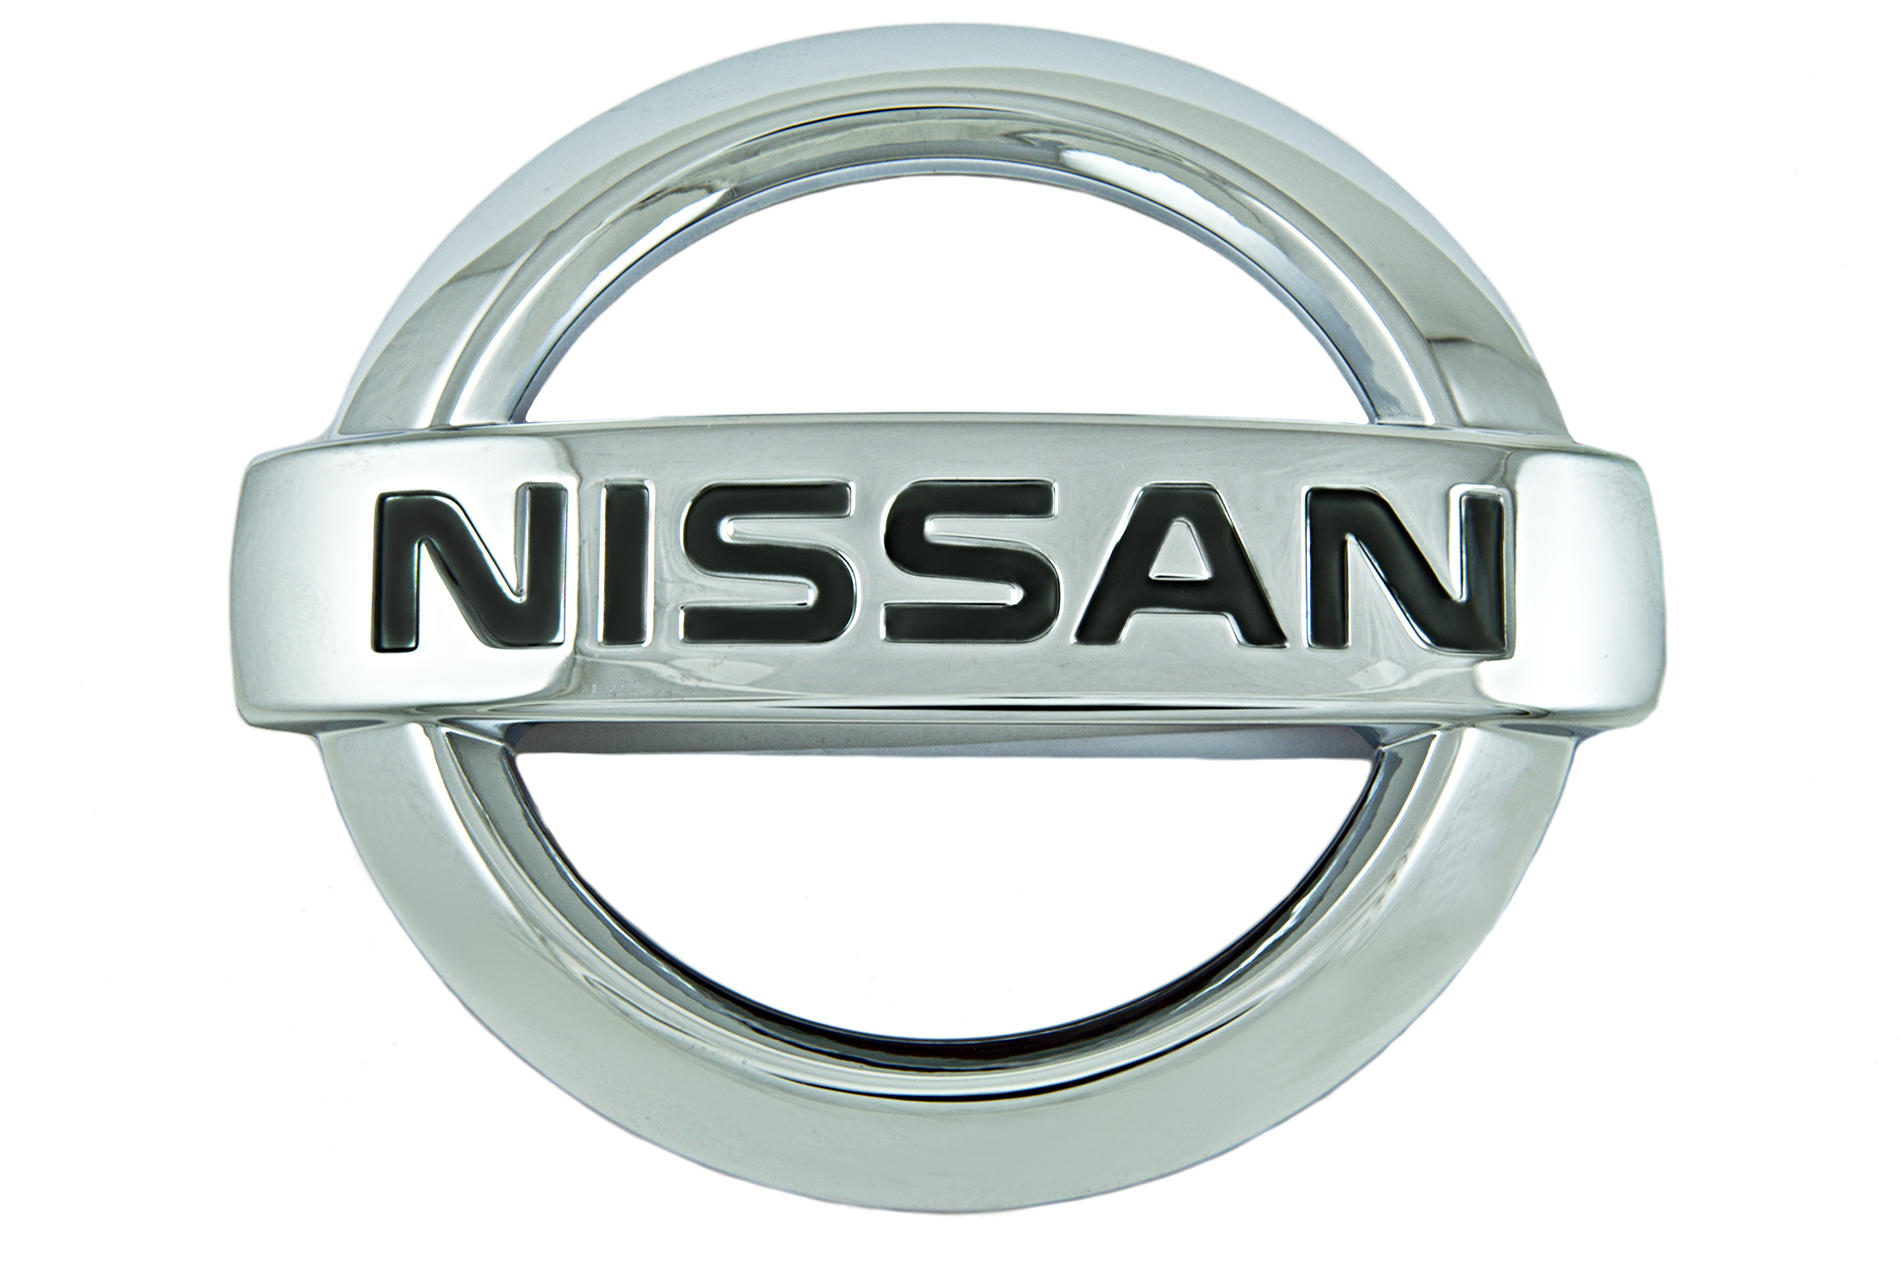 Nissan badges #9